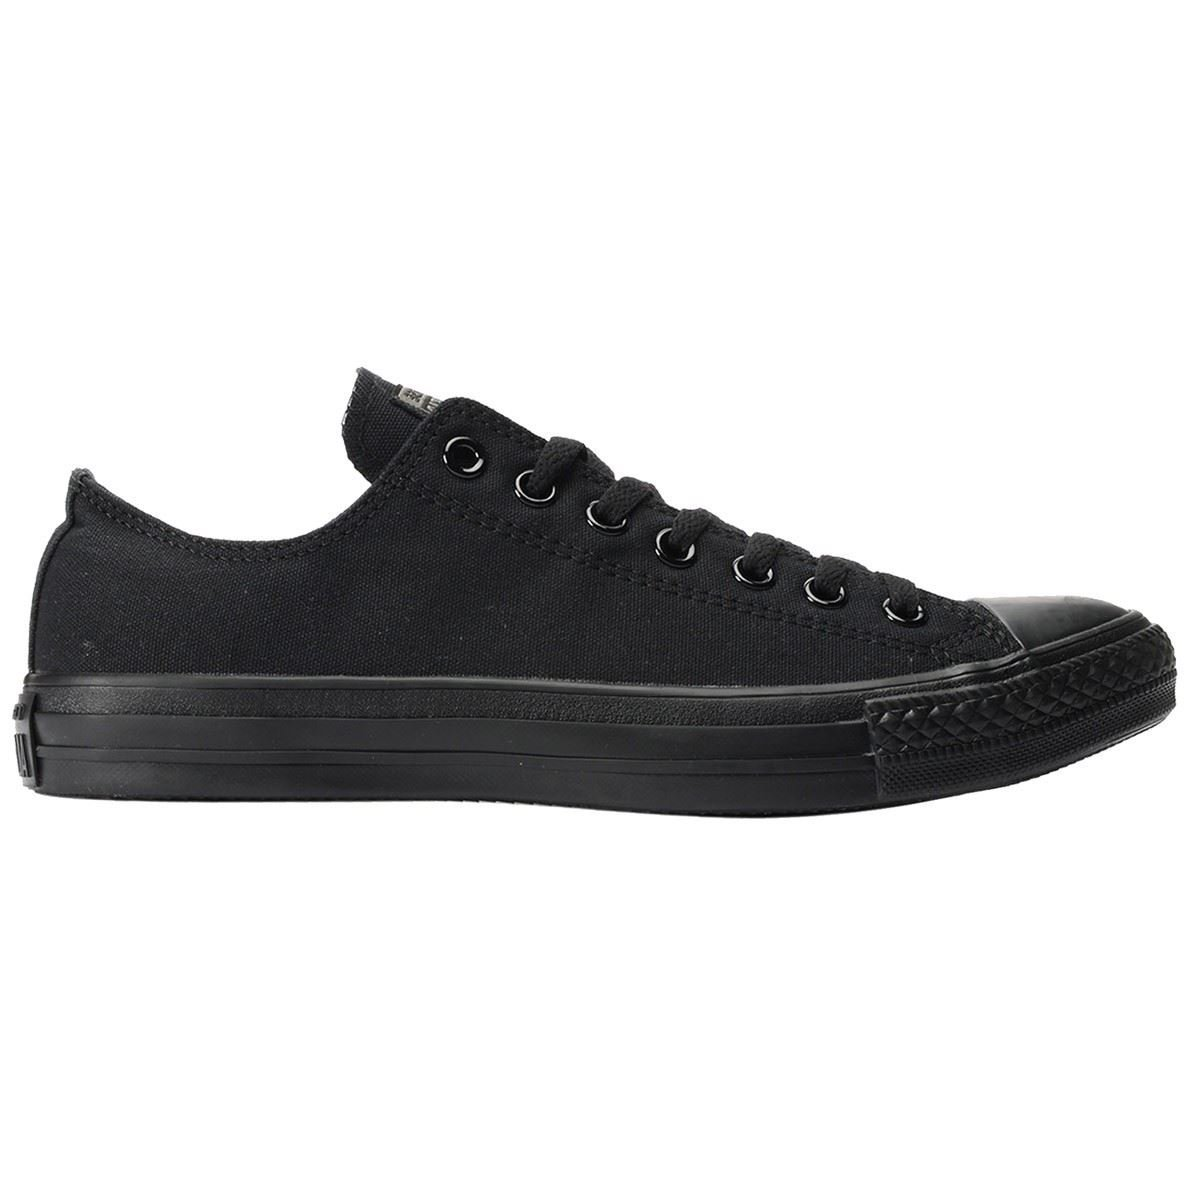 Converse Unisex Chuck Taylor All Star Low Top Black Monochrome Sneakers - 9 D(M) US by Converse (Image #8)